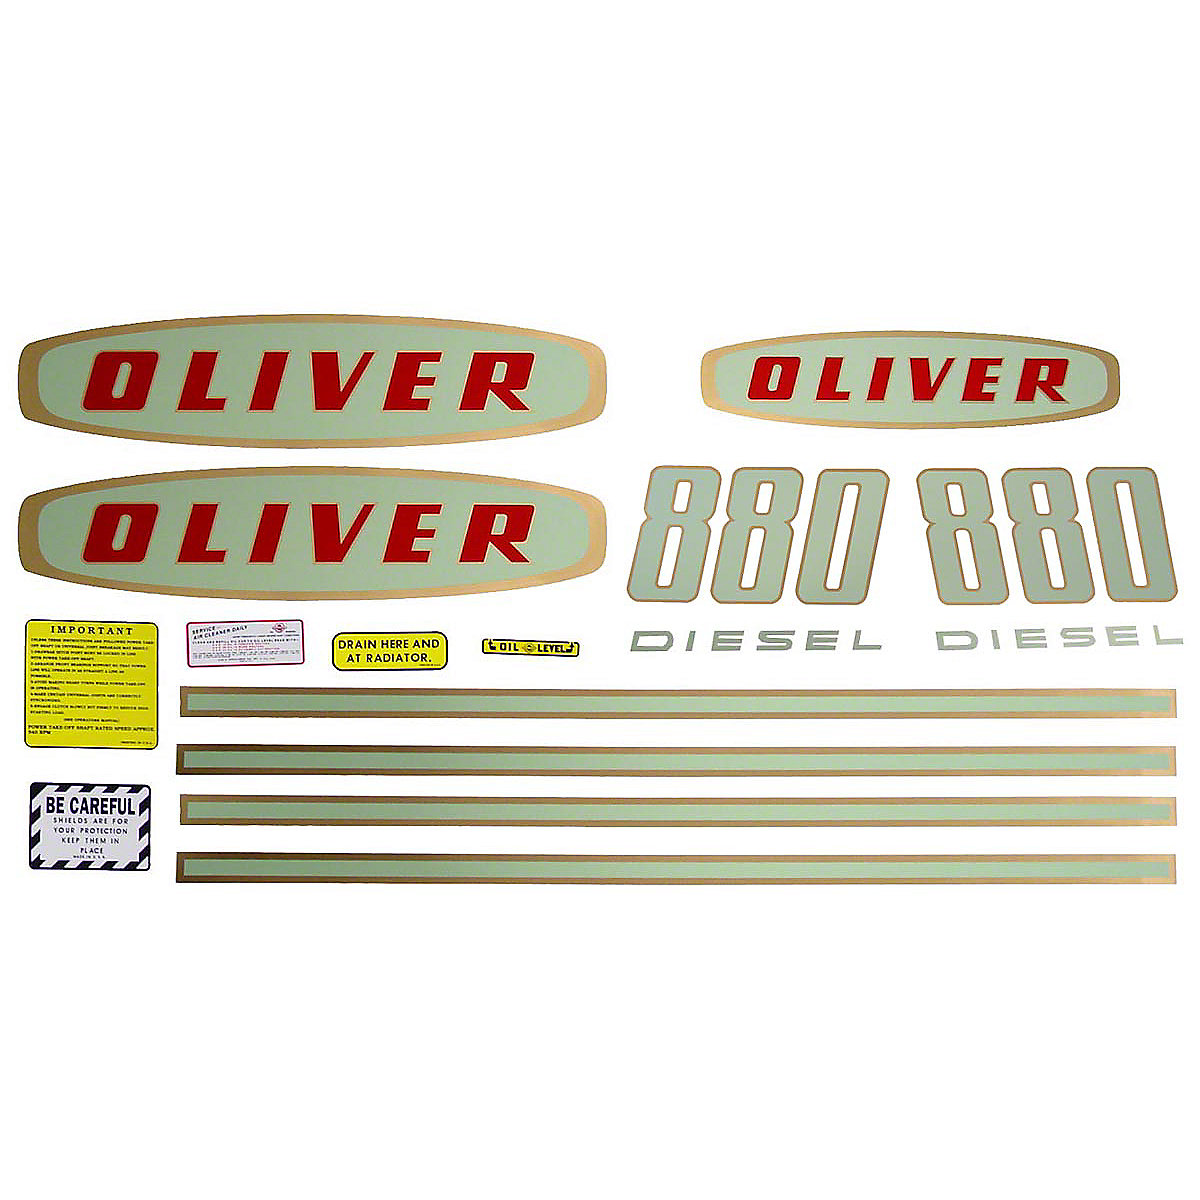 Mylar Decal Set For Oliver 880 Diesel Tractors. Up to SN#: 112250.